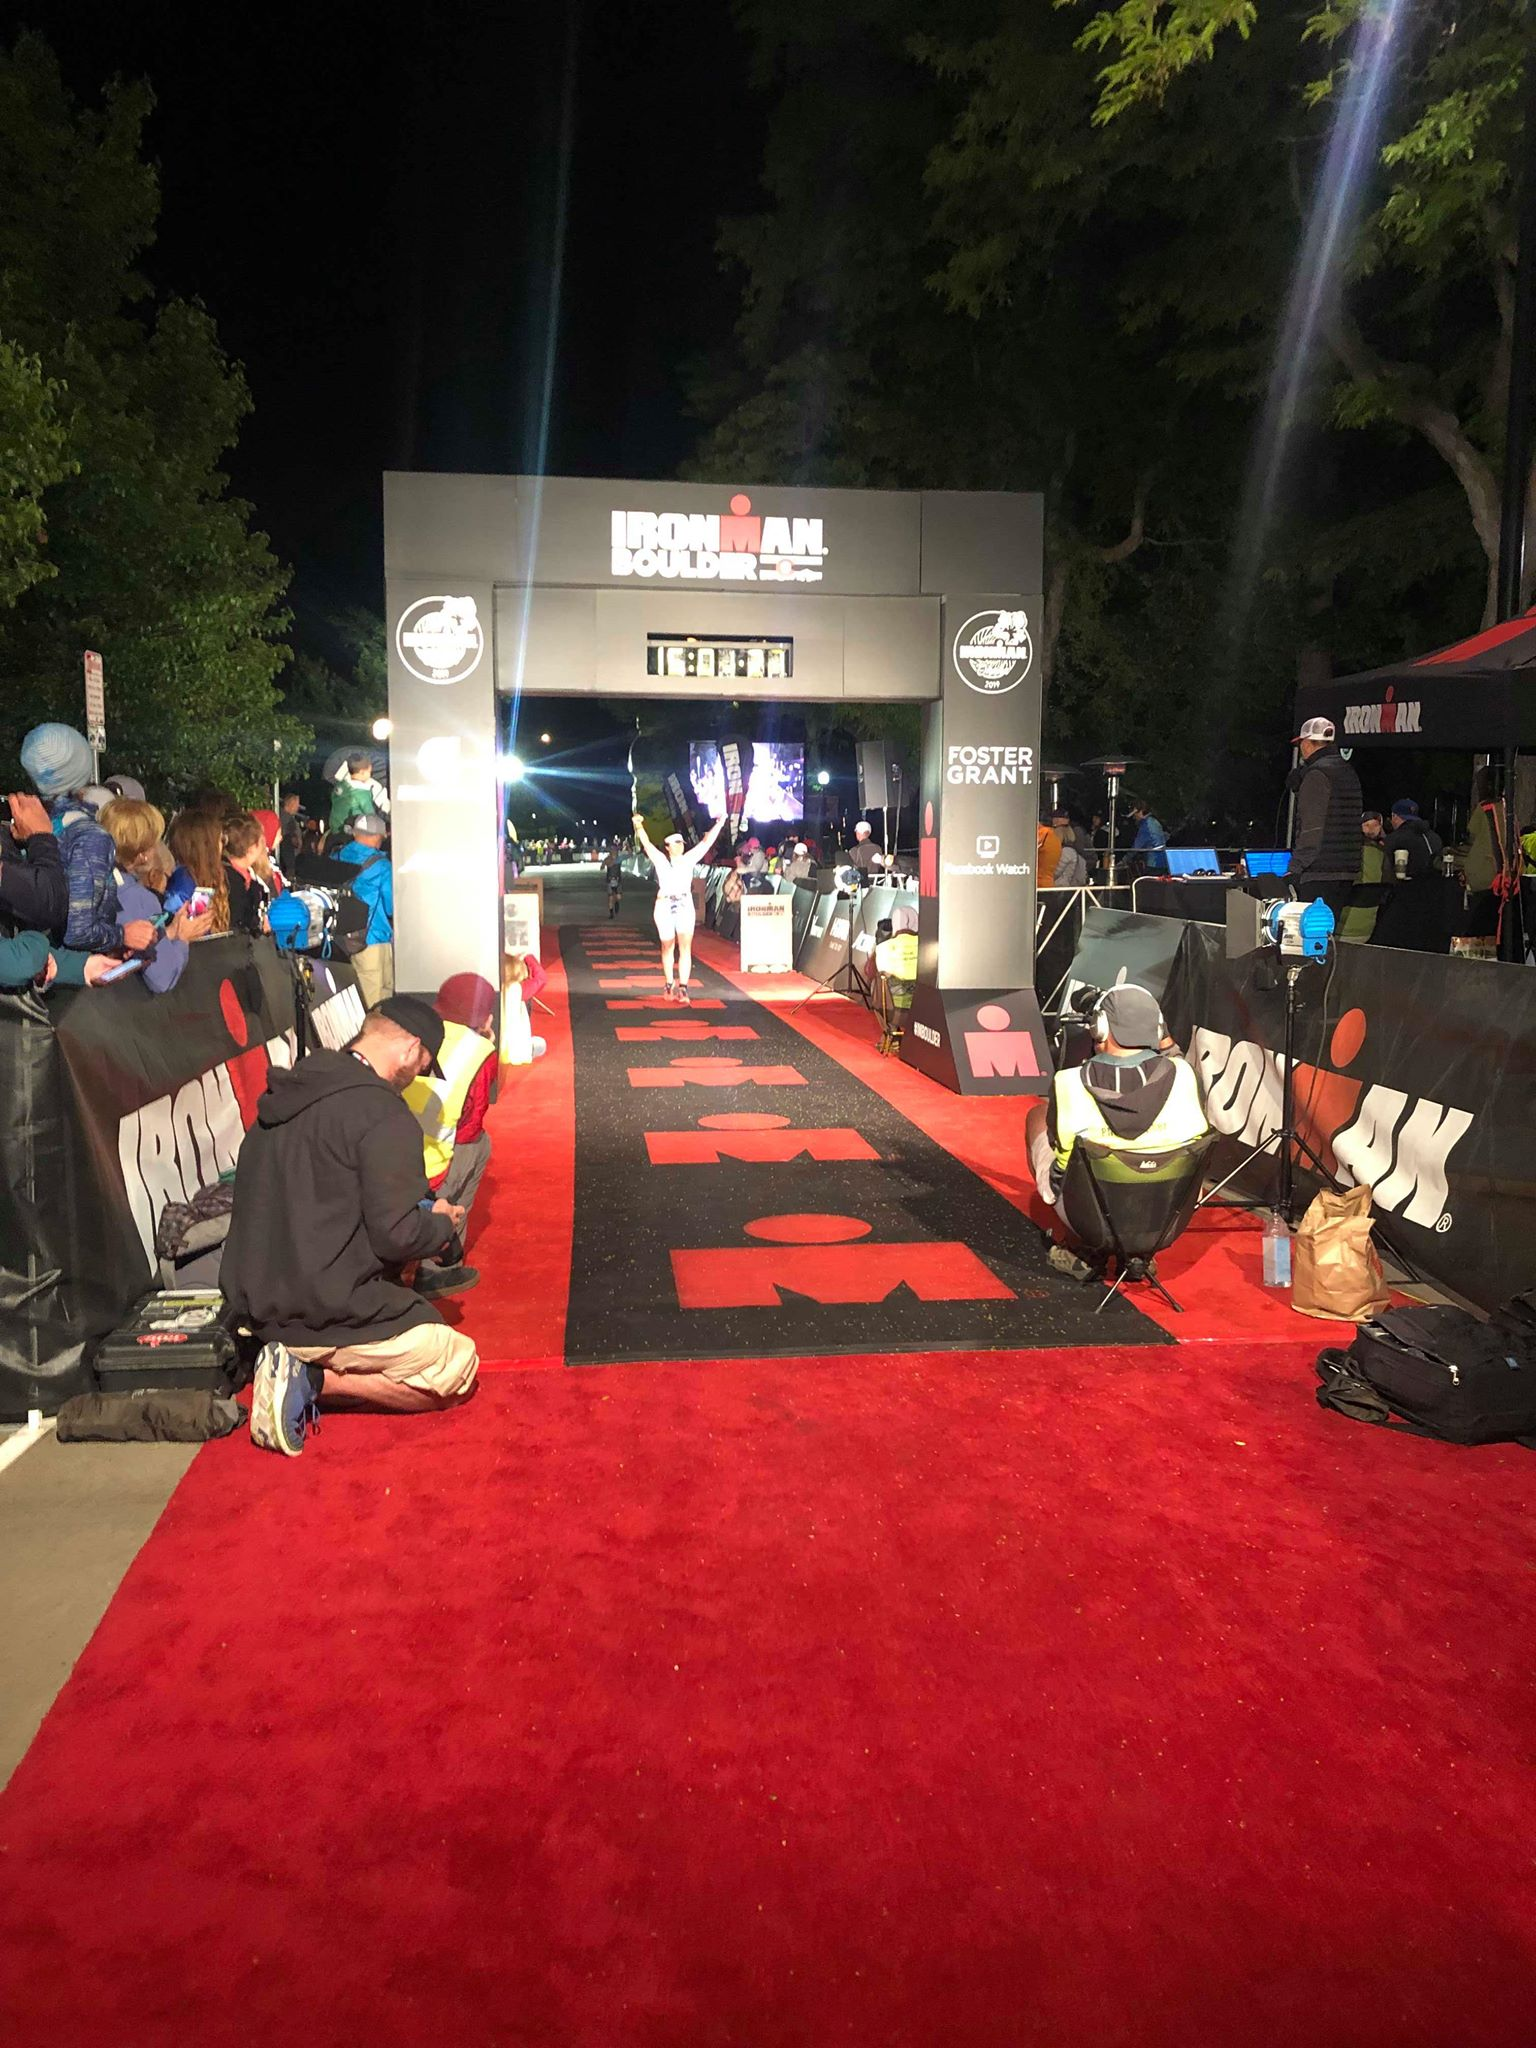 Coach_Terry_Wilson_Pursuit_of_The_Perfect_Race_IRONMAN_Boulder_Ashley_Drayer_13.jpg